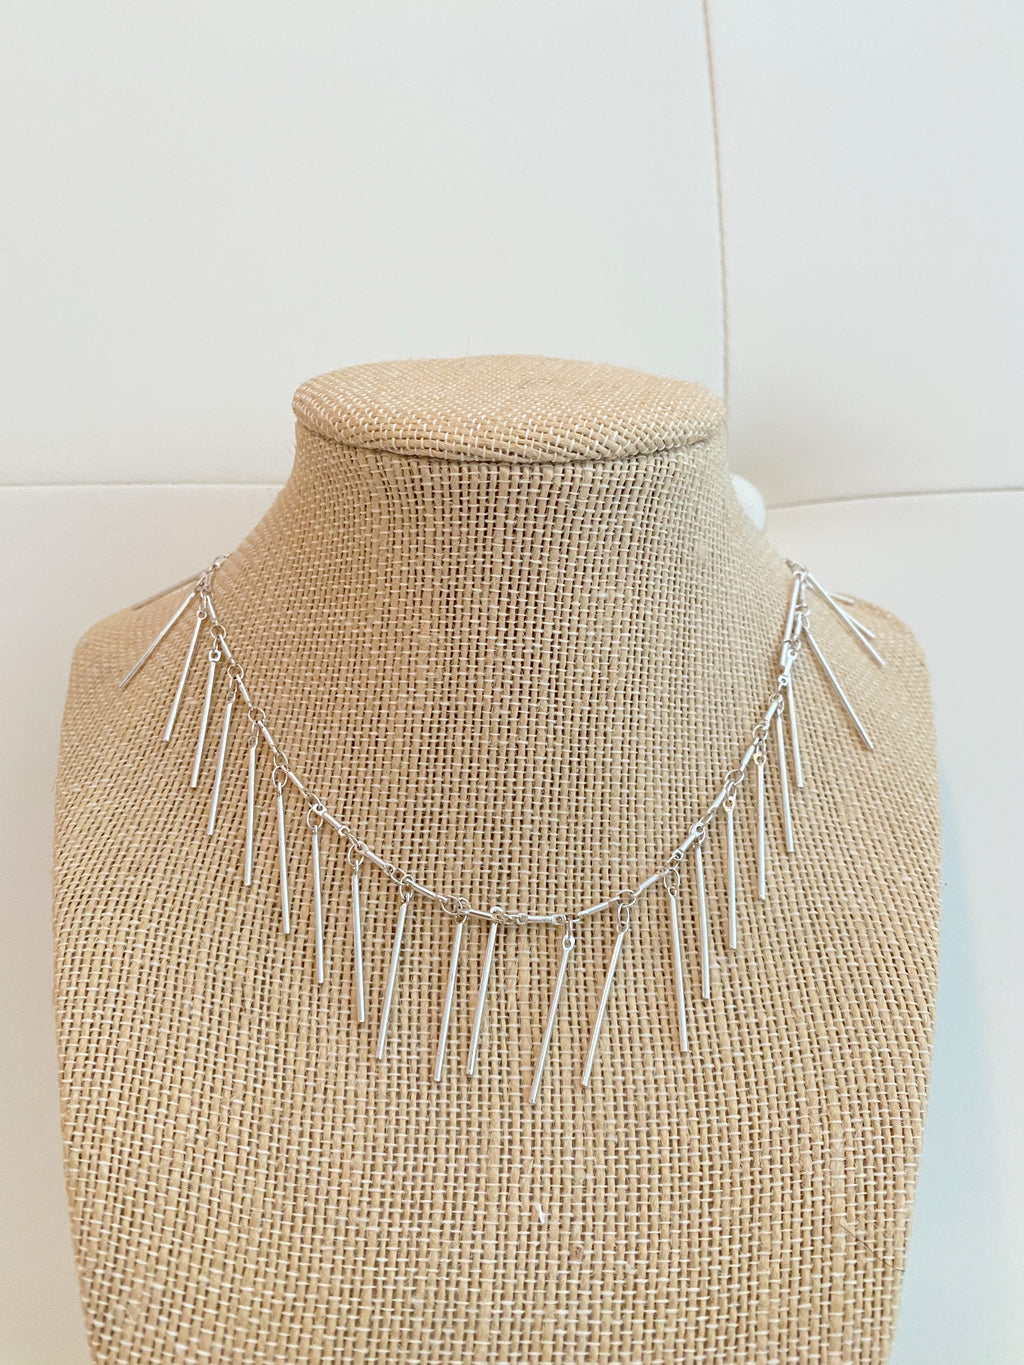 Silver ISA necklace